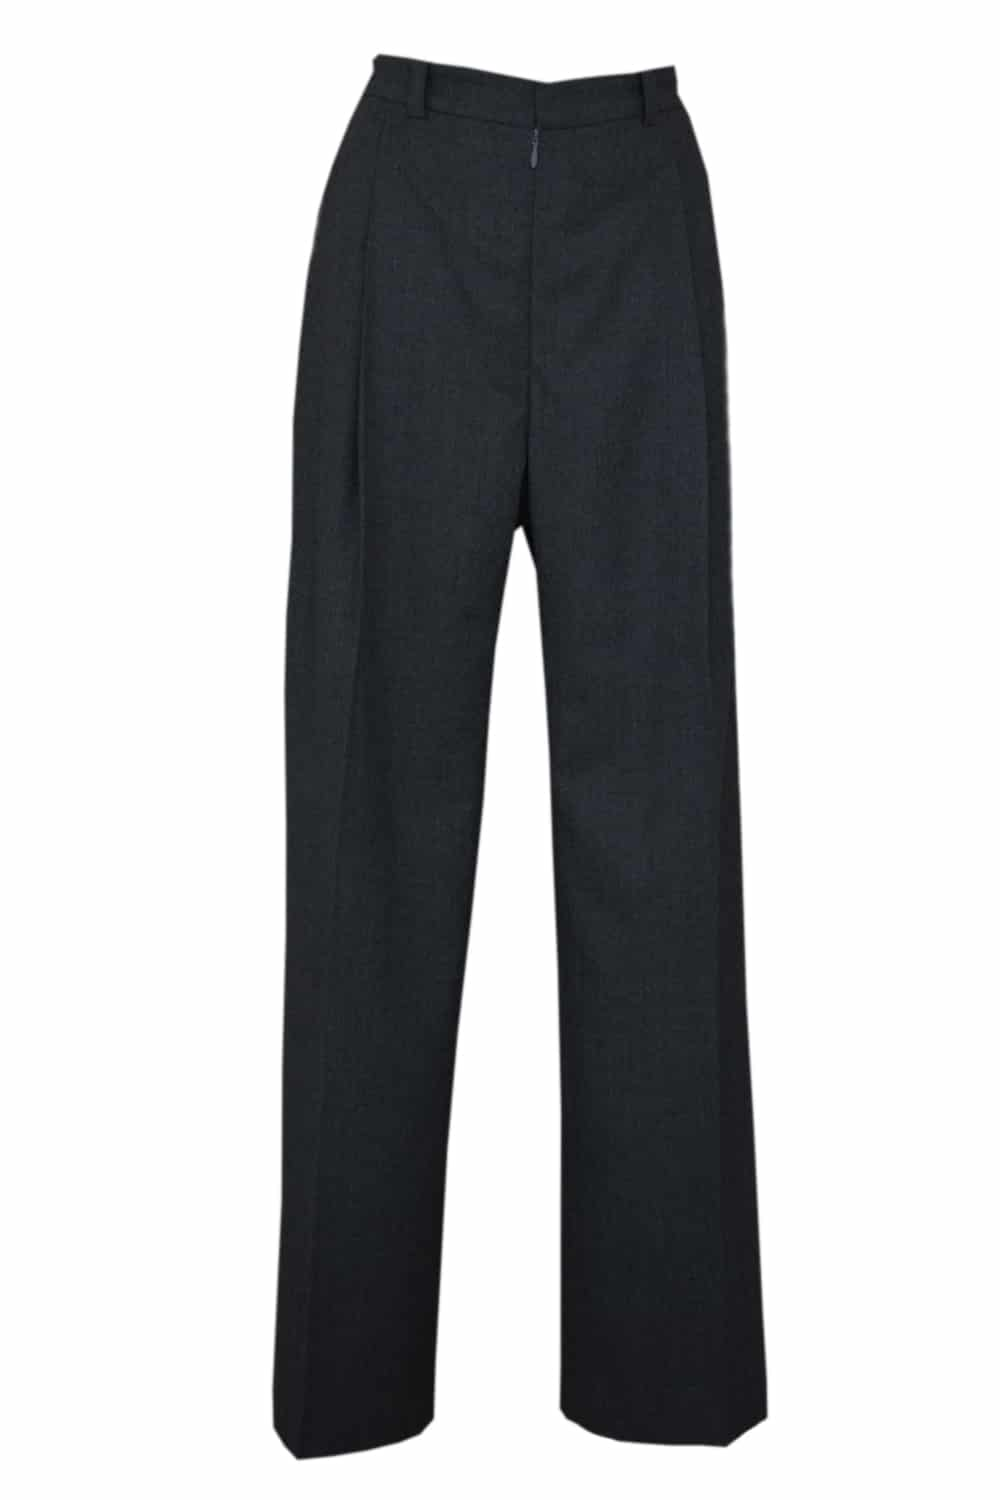 Wide black high waist trousers with flat pleats on the front.